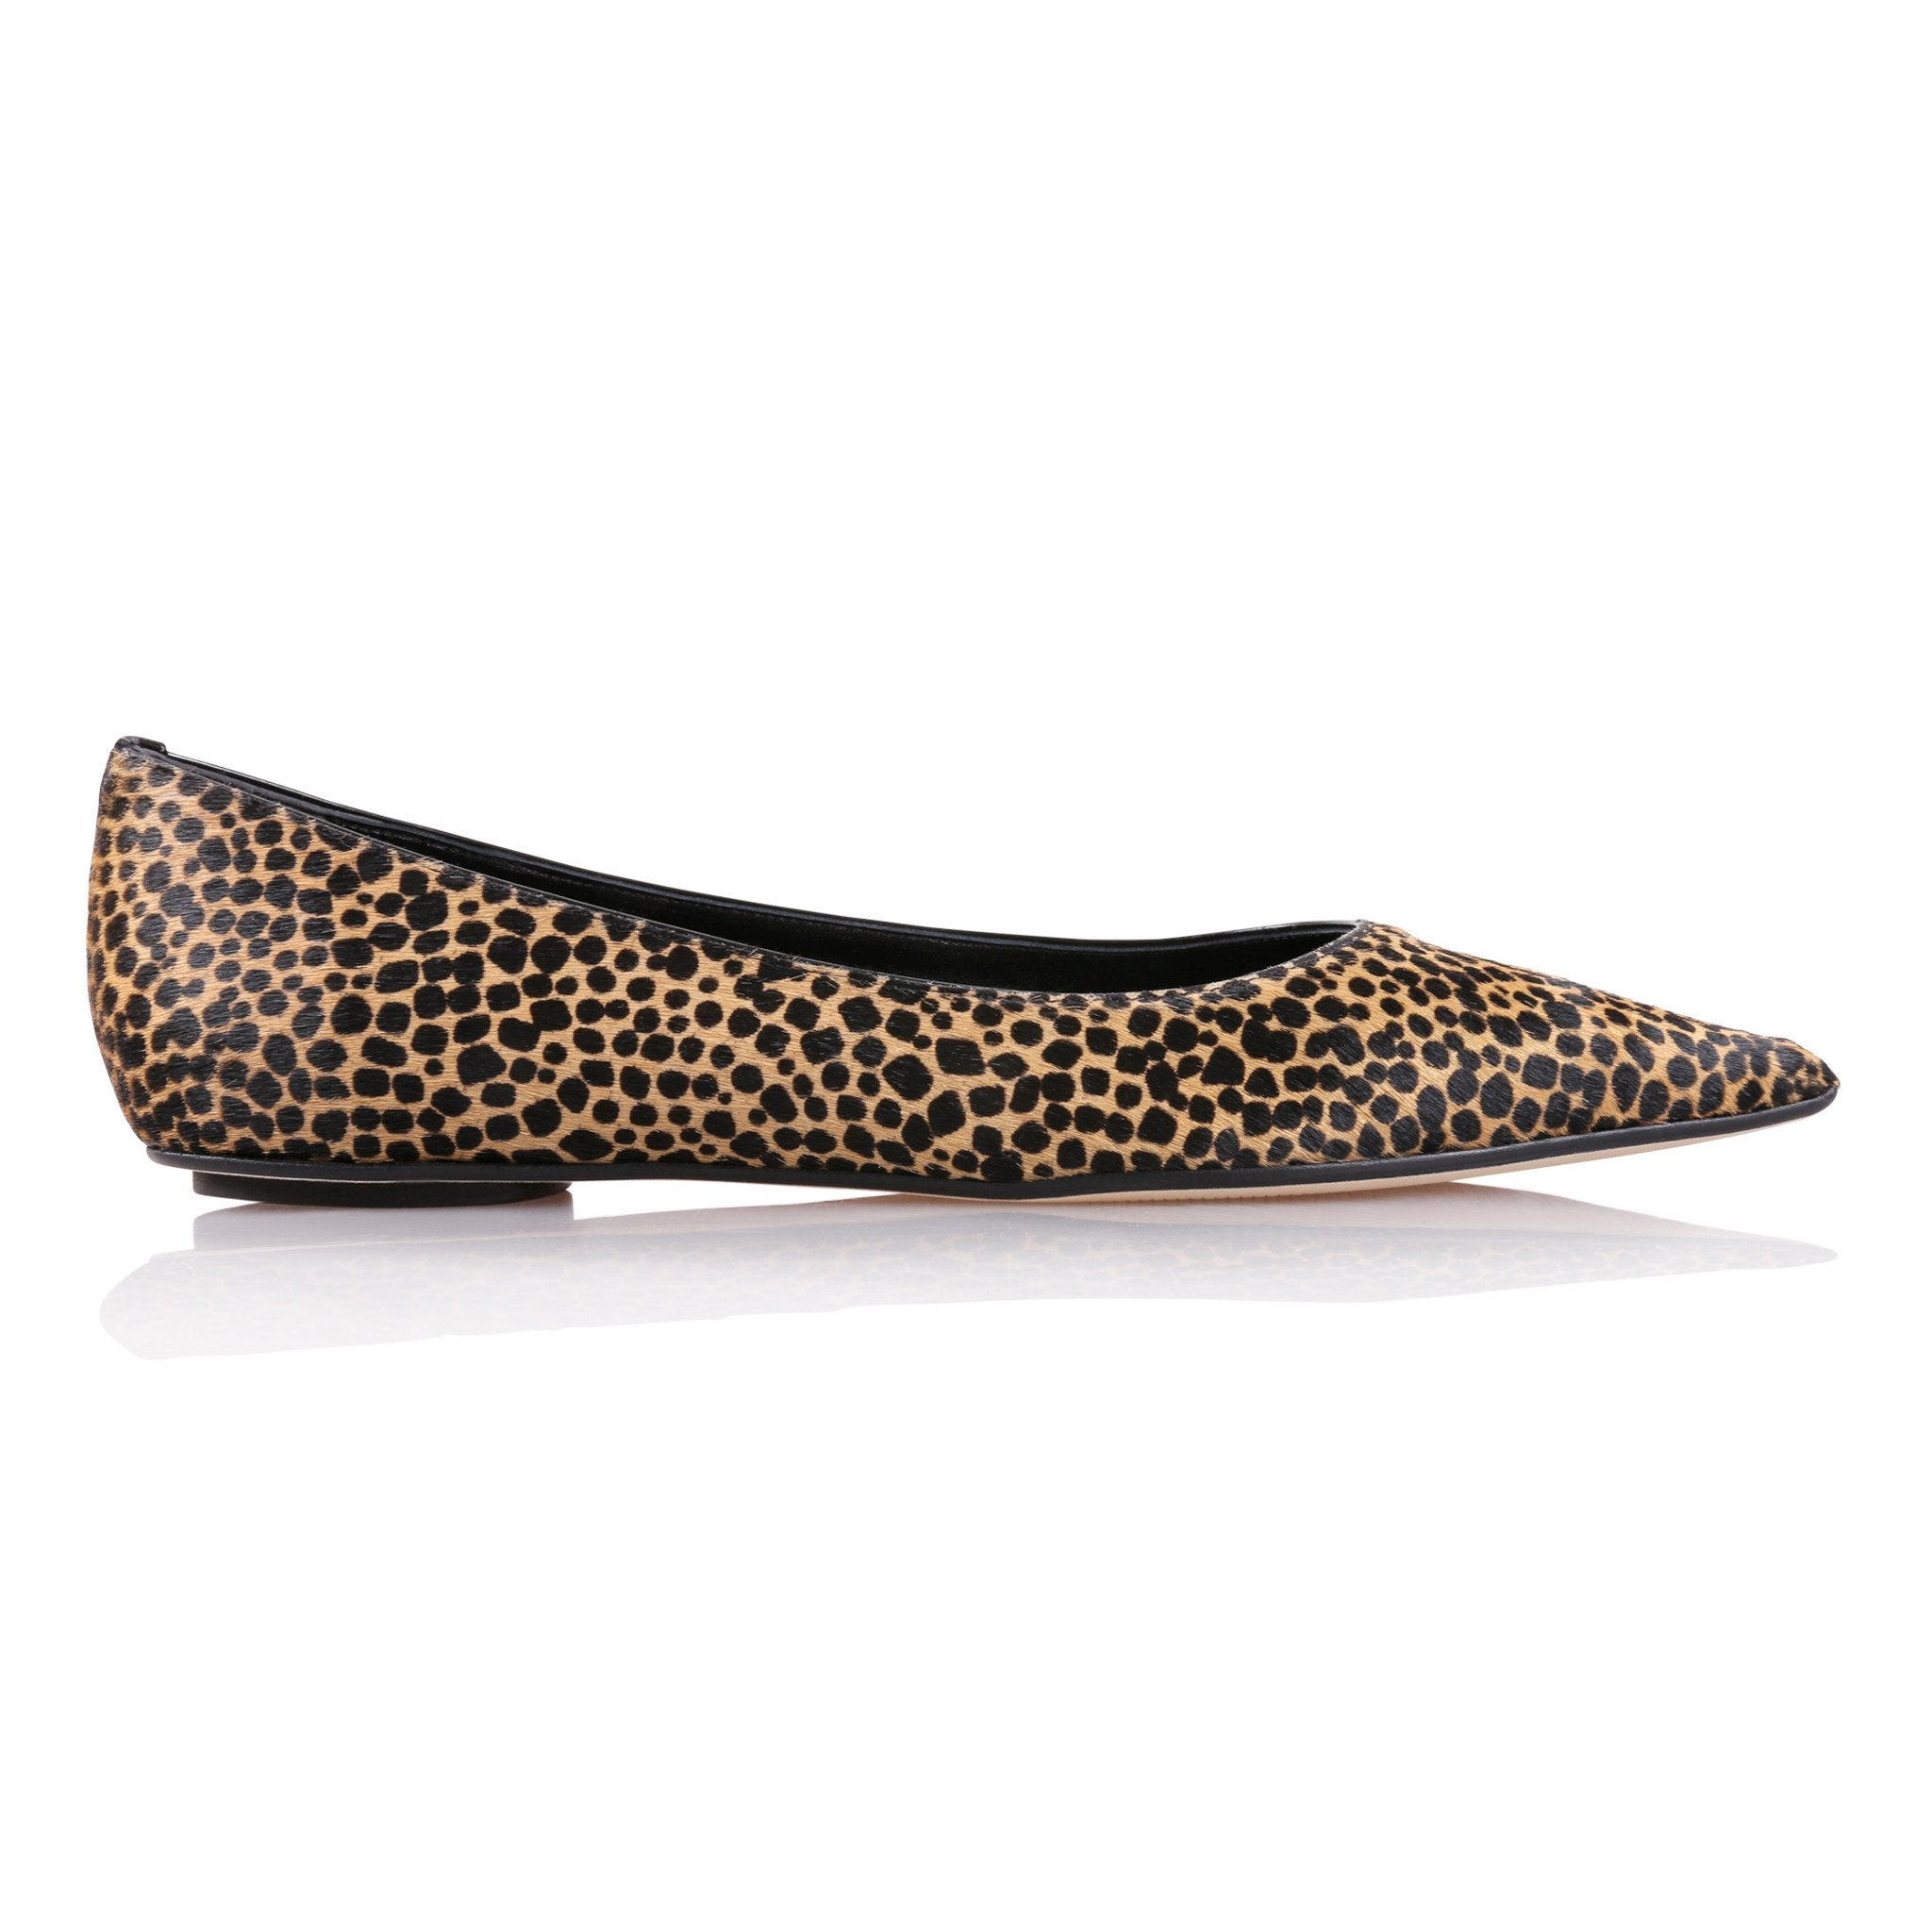 COMO - Calf Hair Orange Cheetah + Patent Nero, VIAJIYU - Women's Hand Made Sustainable Luxury Shoes. Made in Italy. Made to Order.